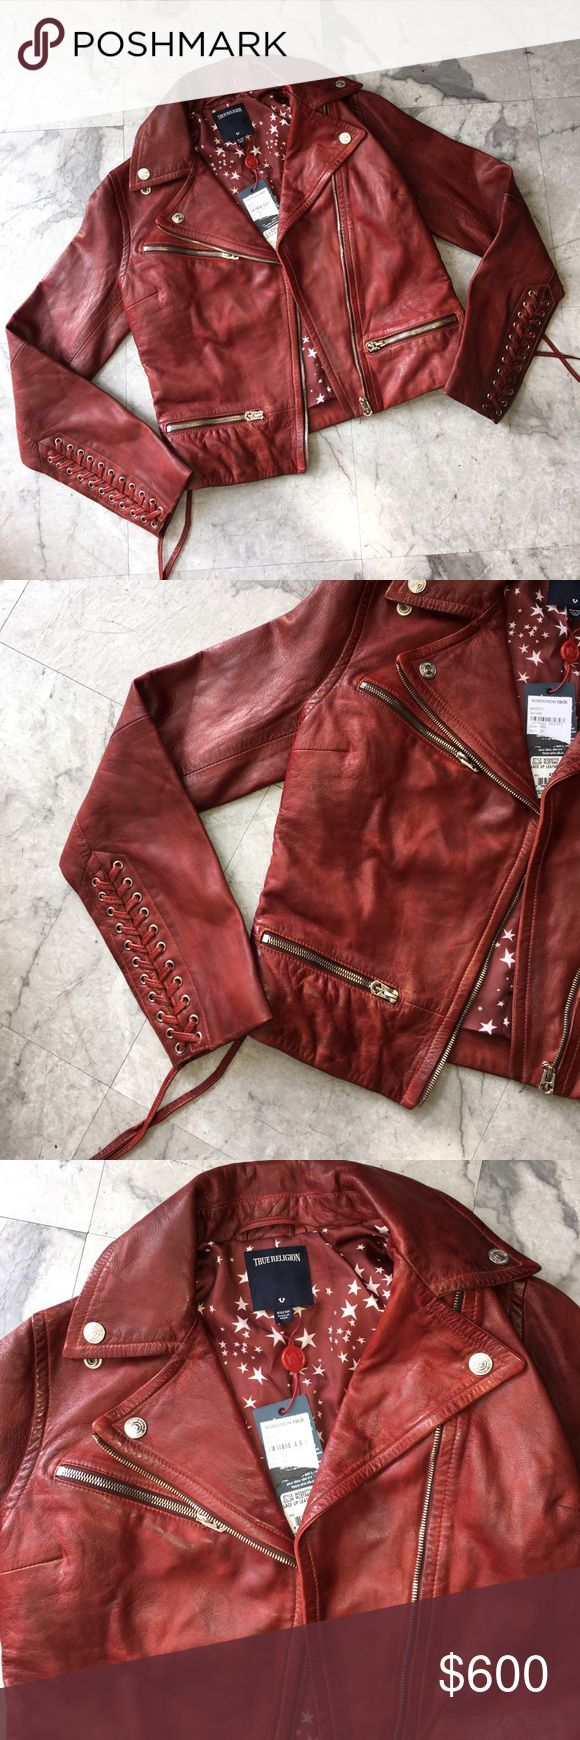 """TRUE RELIGION LACE UP LEATHER MOTO JACKET SIZE XS Super cute and brand new!  Want to save more?  Bundle and save on shipping! Measurements:  Length: 18.75""""  Underarms: 17""""  Shoulder length: 15""""  Waist:  * smoke free home * Reasonable offers only please * All items are recorded in condition listed prior to shipping  * follow me on IG for exclusive sale offers @theposhpassport_ True Religion Jackets & Coats"""